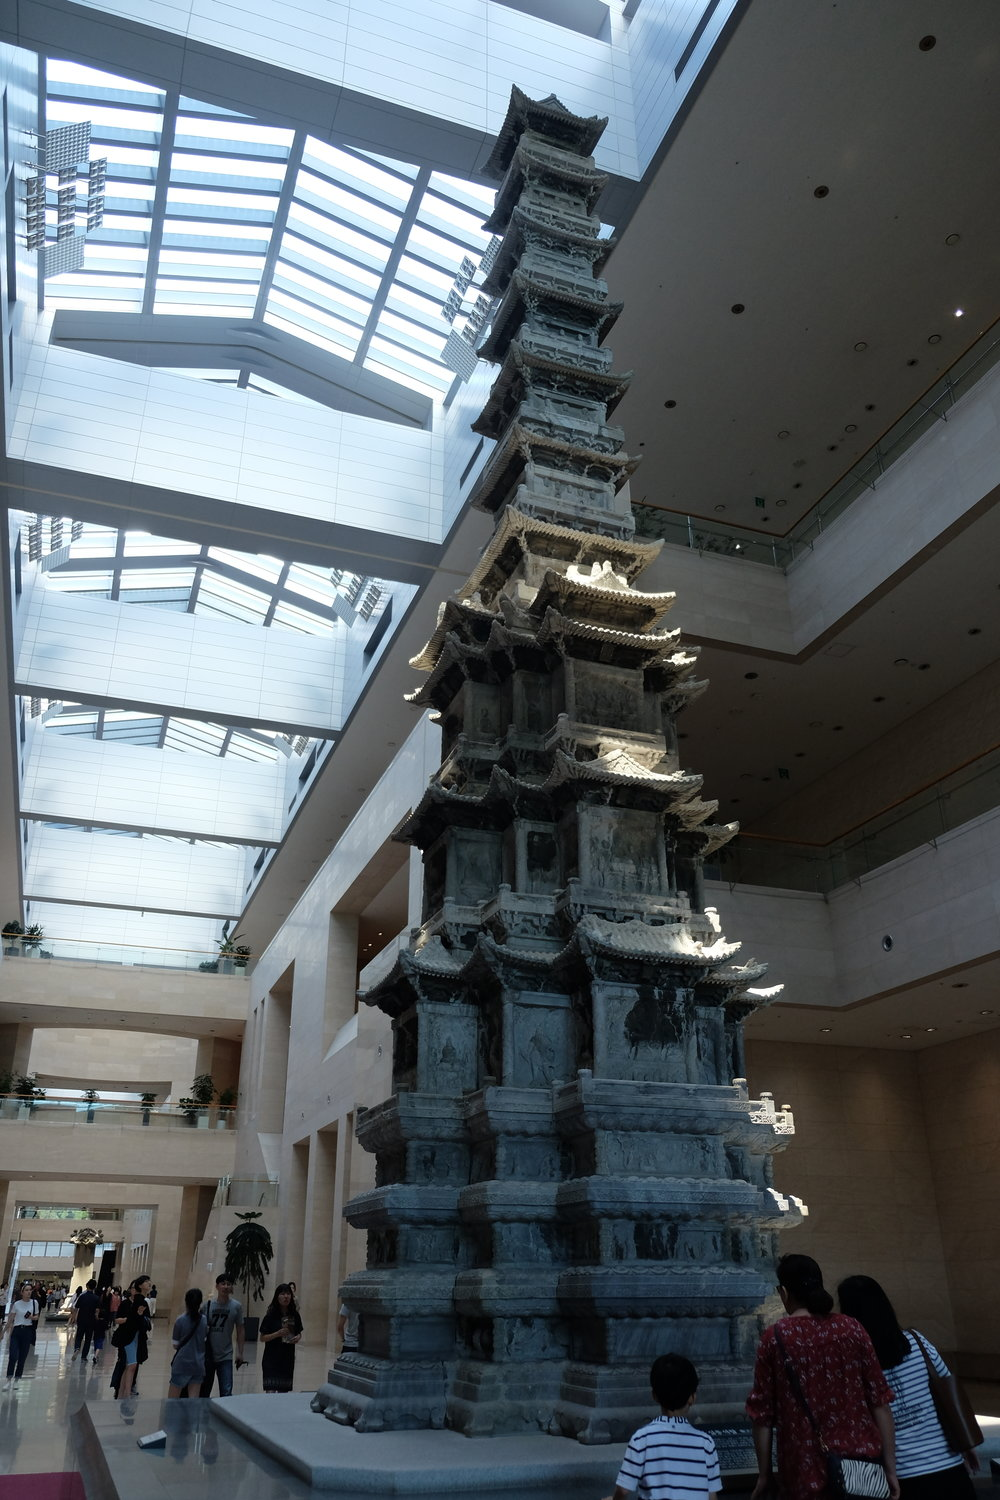 And the museum's pride and joy - this ten-story stone pagoda that sits in the main hall on the ground level. Originally taken apart by the Japanese in 1907, it was hauled overseas and then brought back some years later.